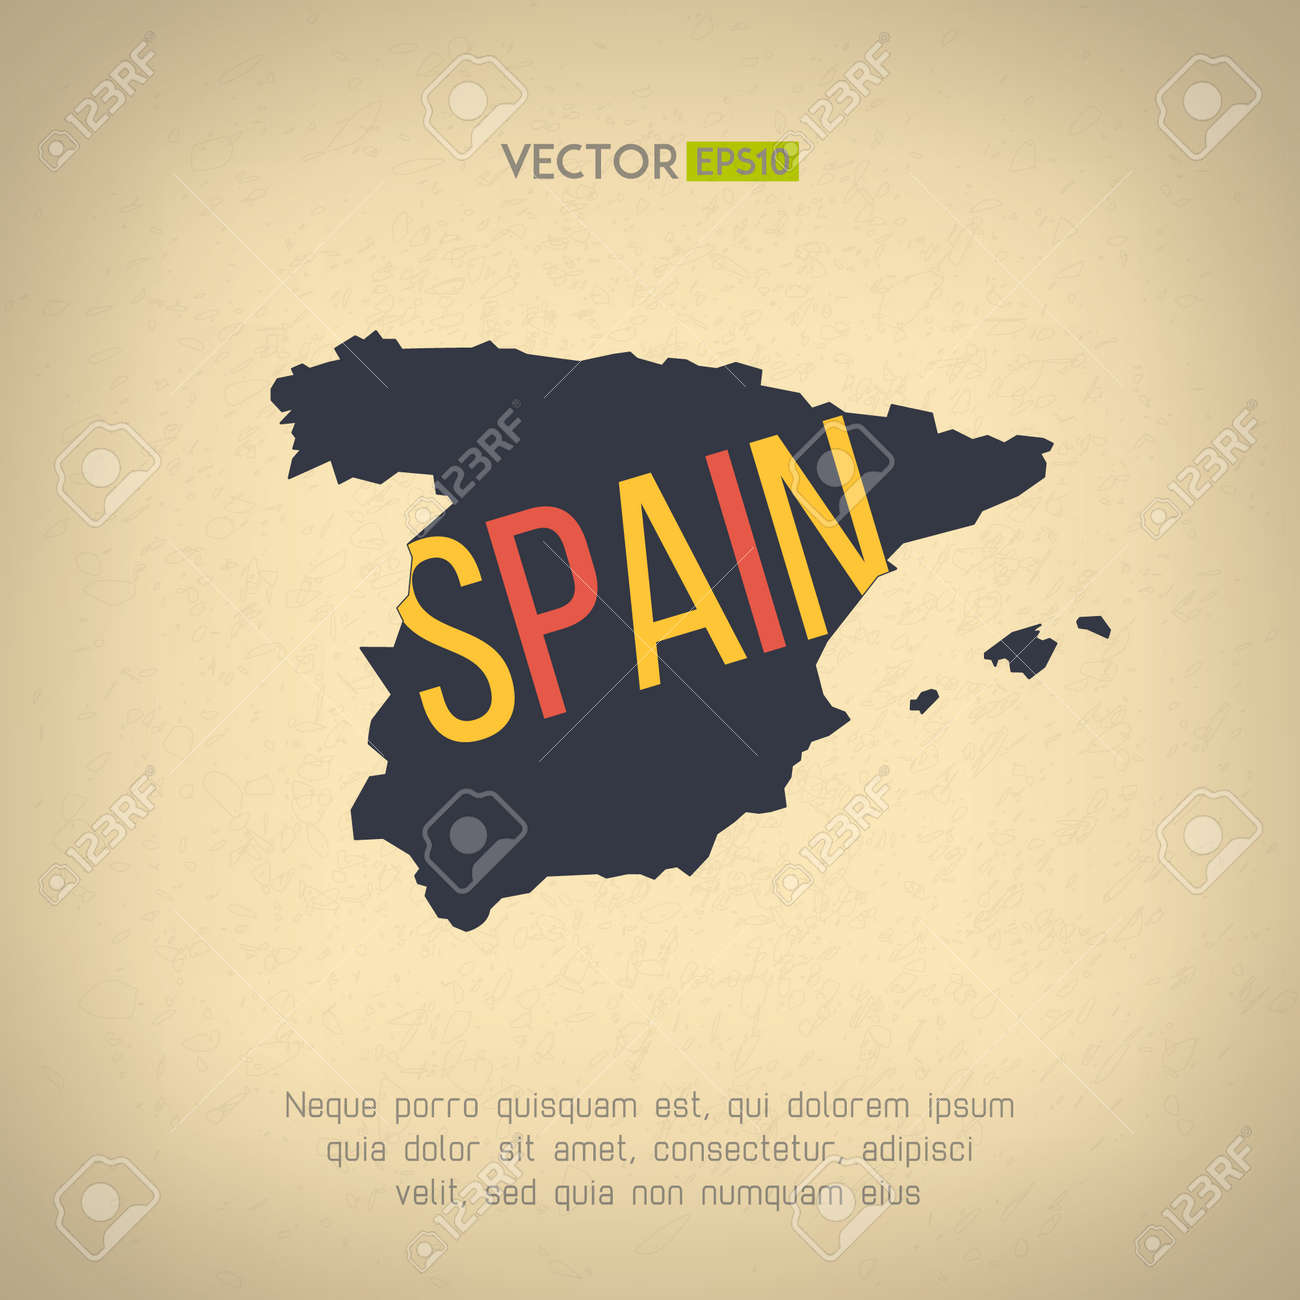 Vector spain map in vintage design spanish border on grunge vector spain map in vintage design spanish border on grunge background letters are not gumiabroncs Choice Image